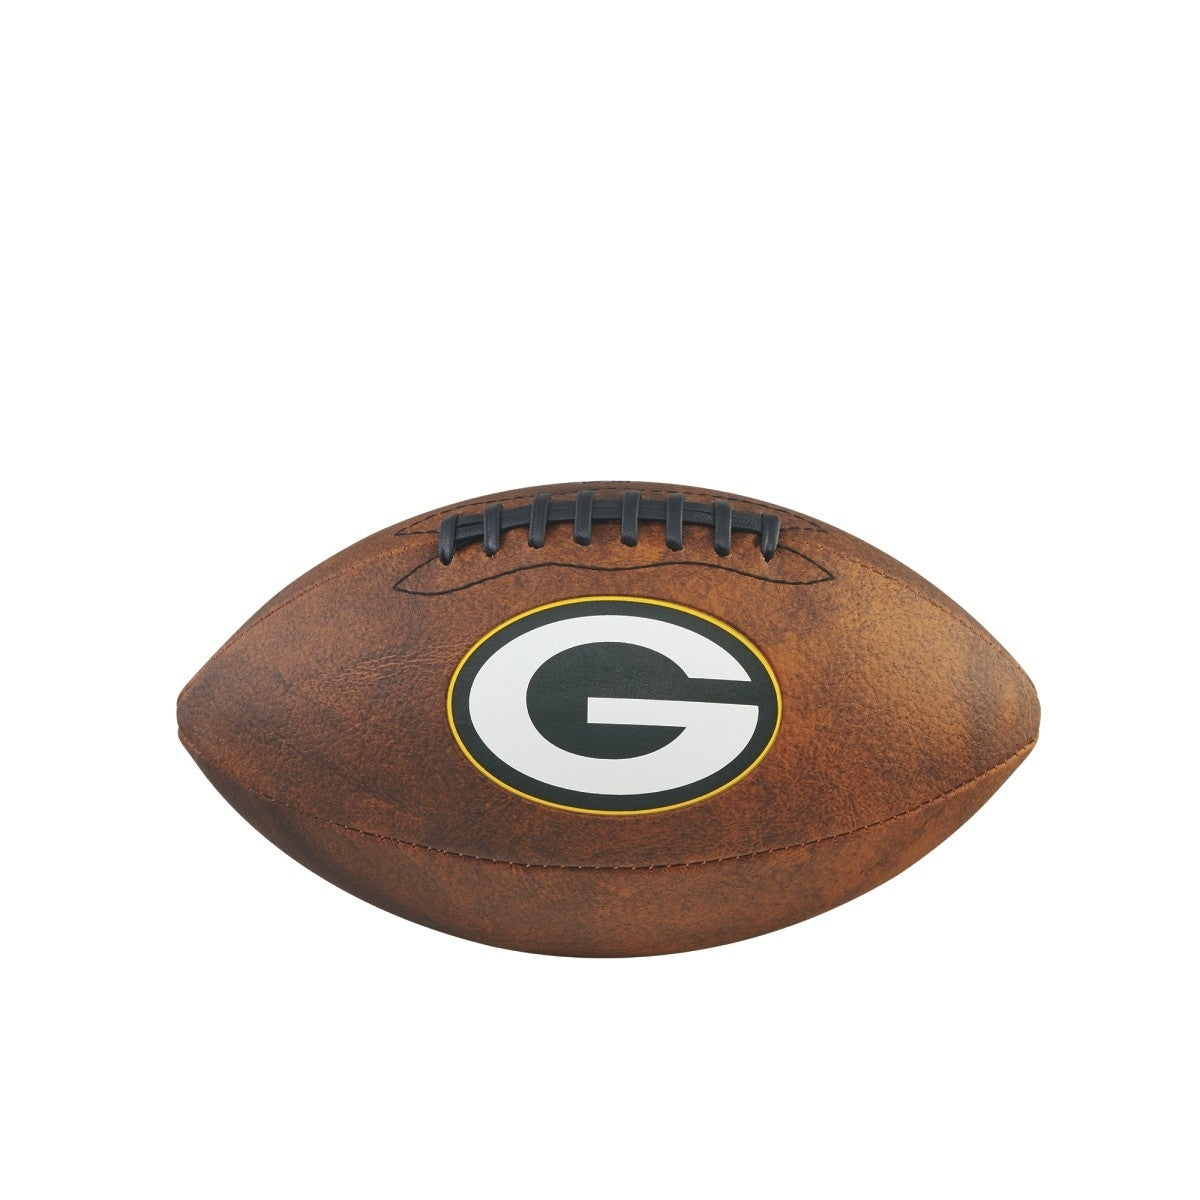 NFL Junior Throwback Football - Green Bay Packers